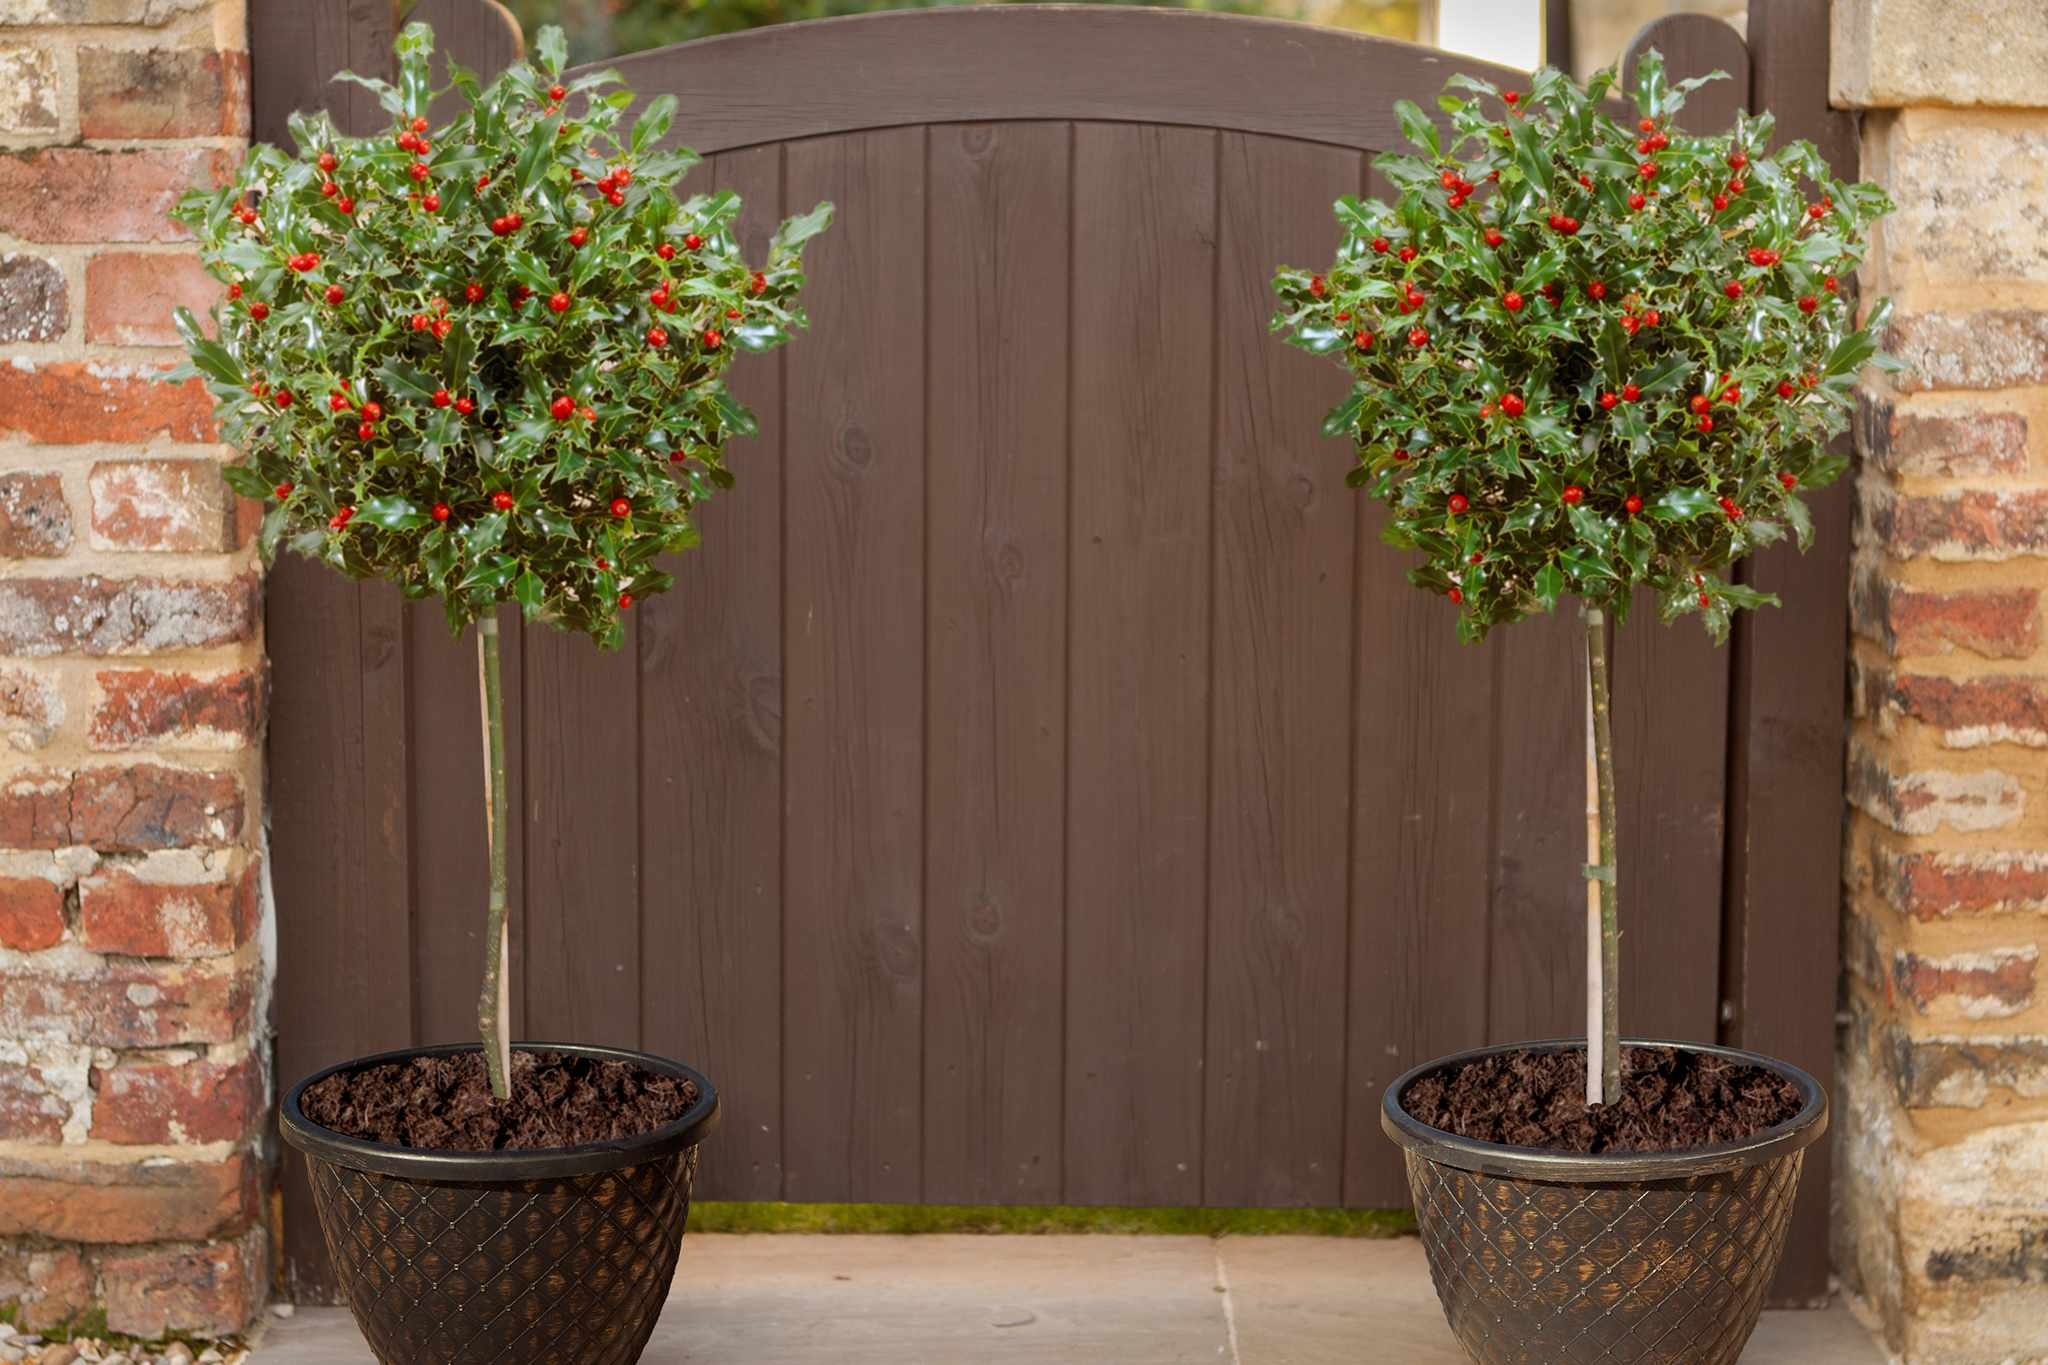 bloomingdirect-holly-standards-2048-1465